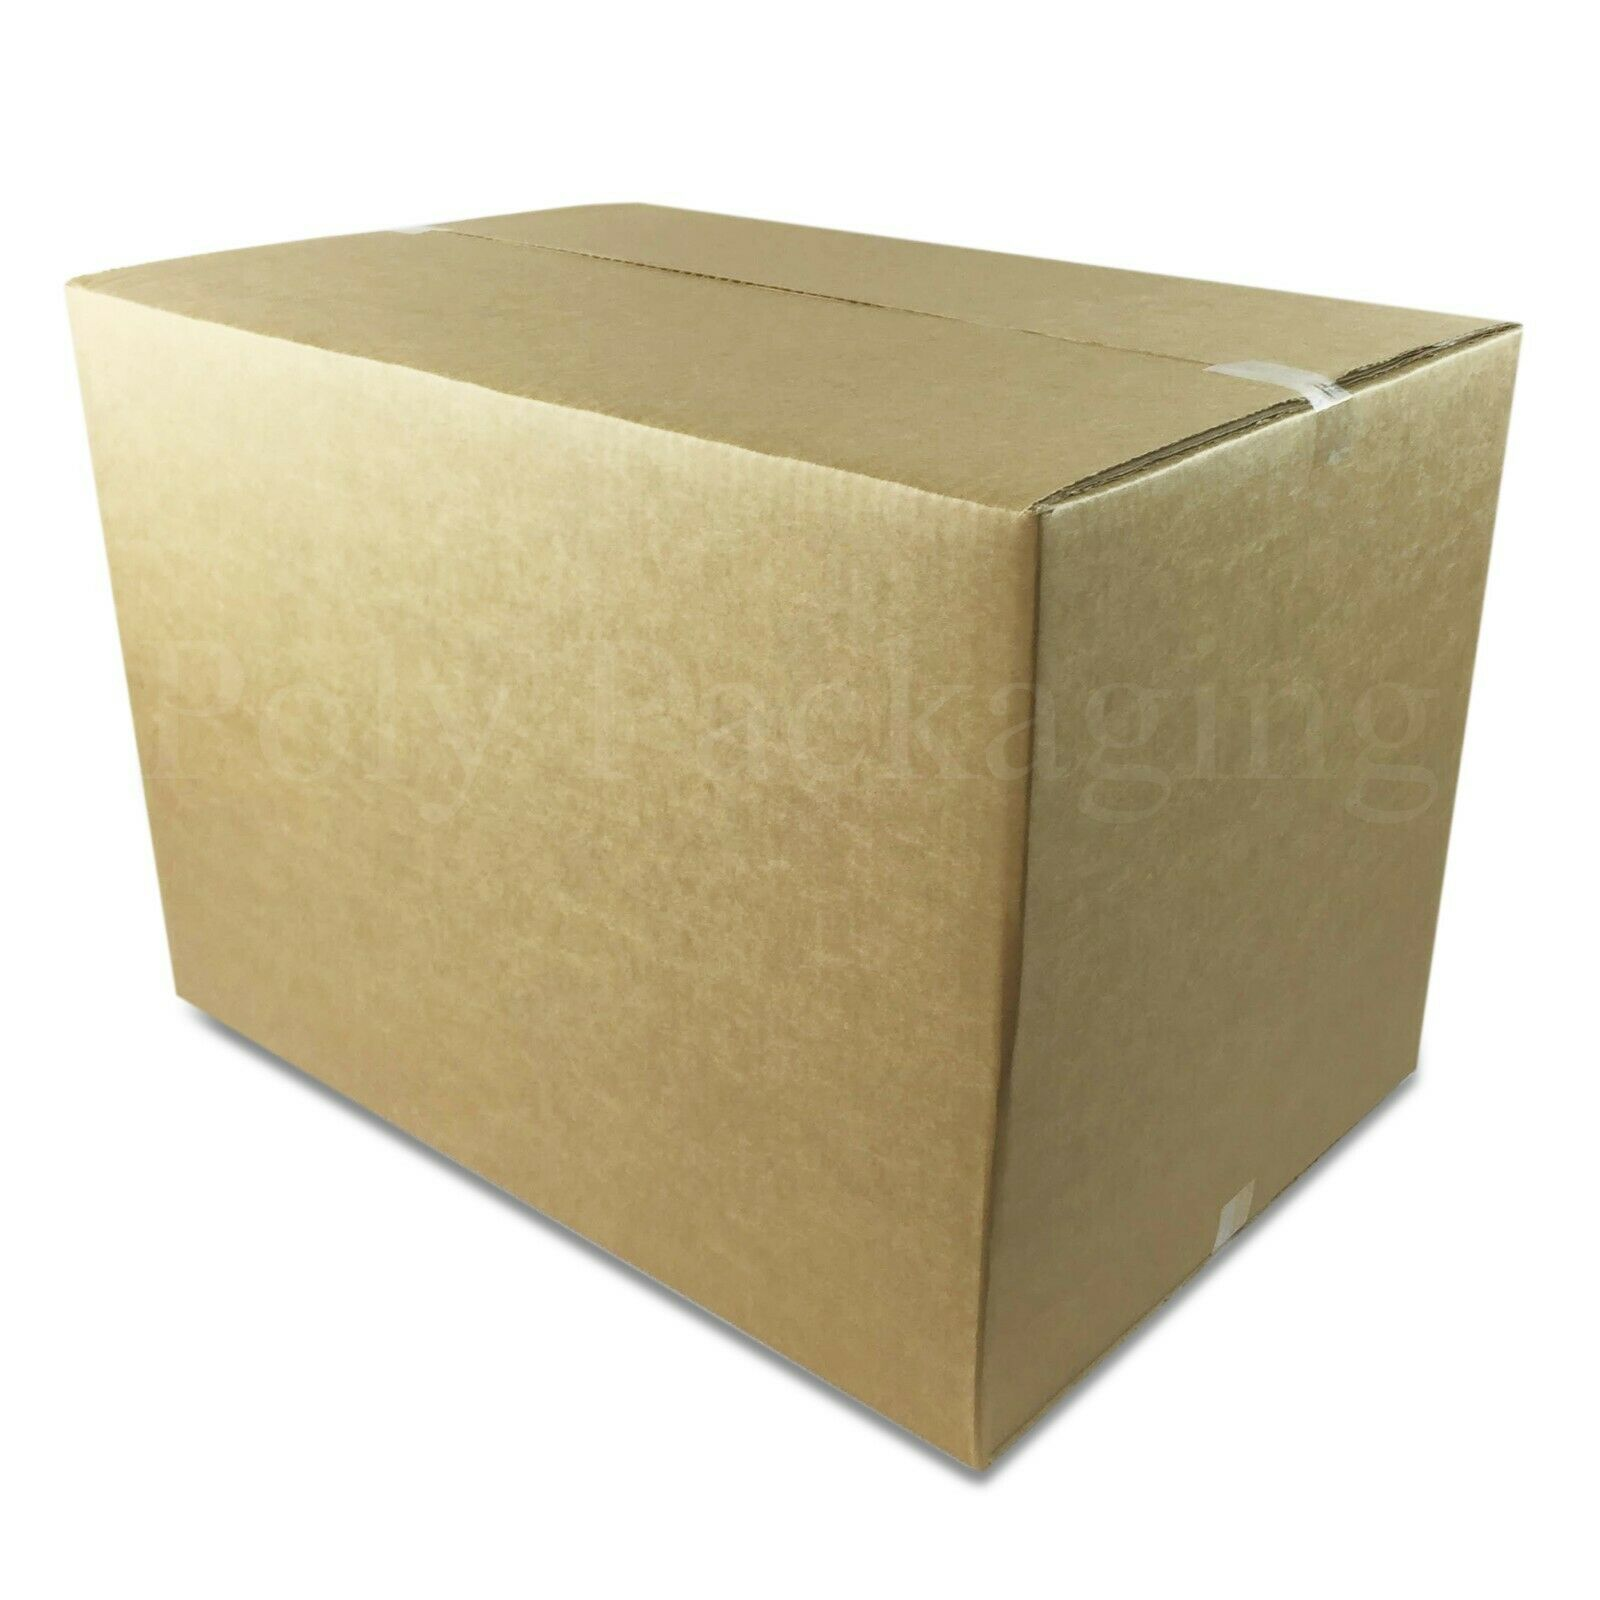 60 x 18x12x12 DOUBLE WALL Cardboard Boxes(457x305x305mm)